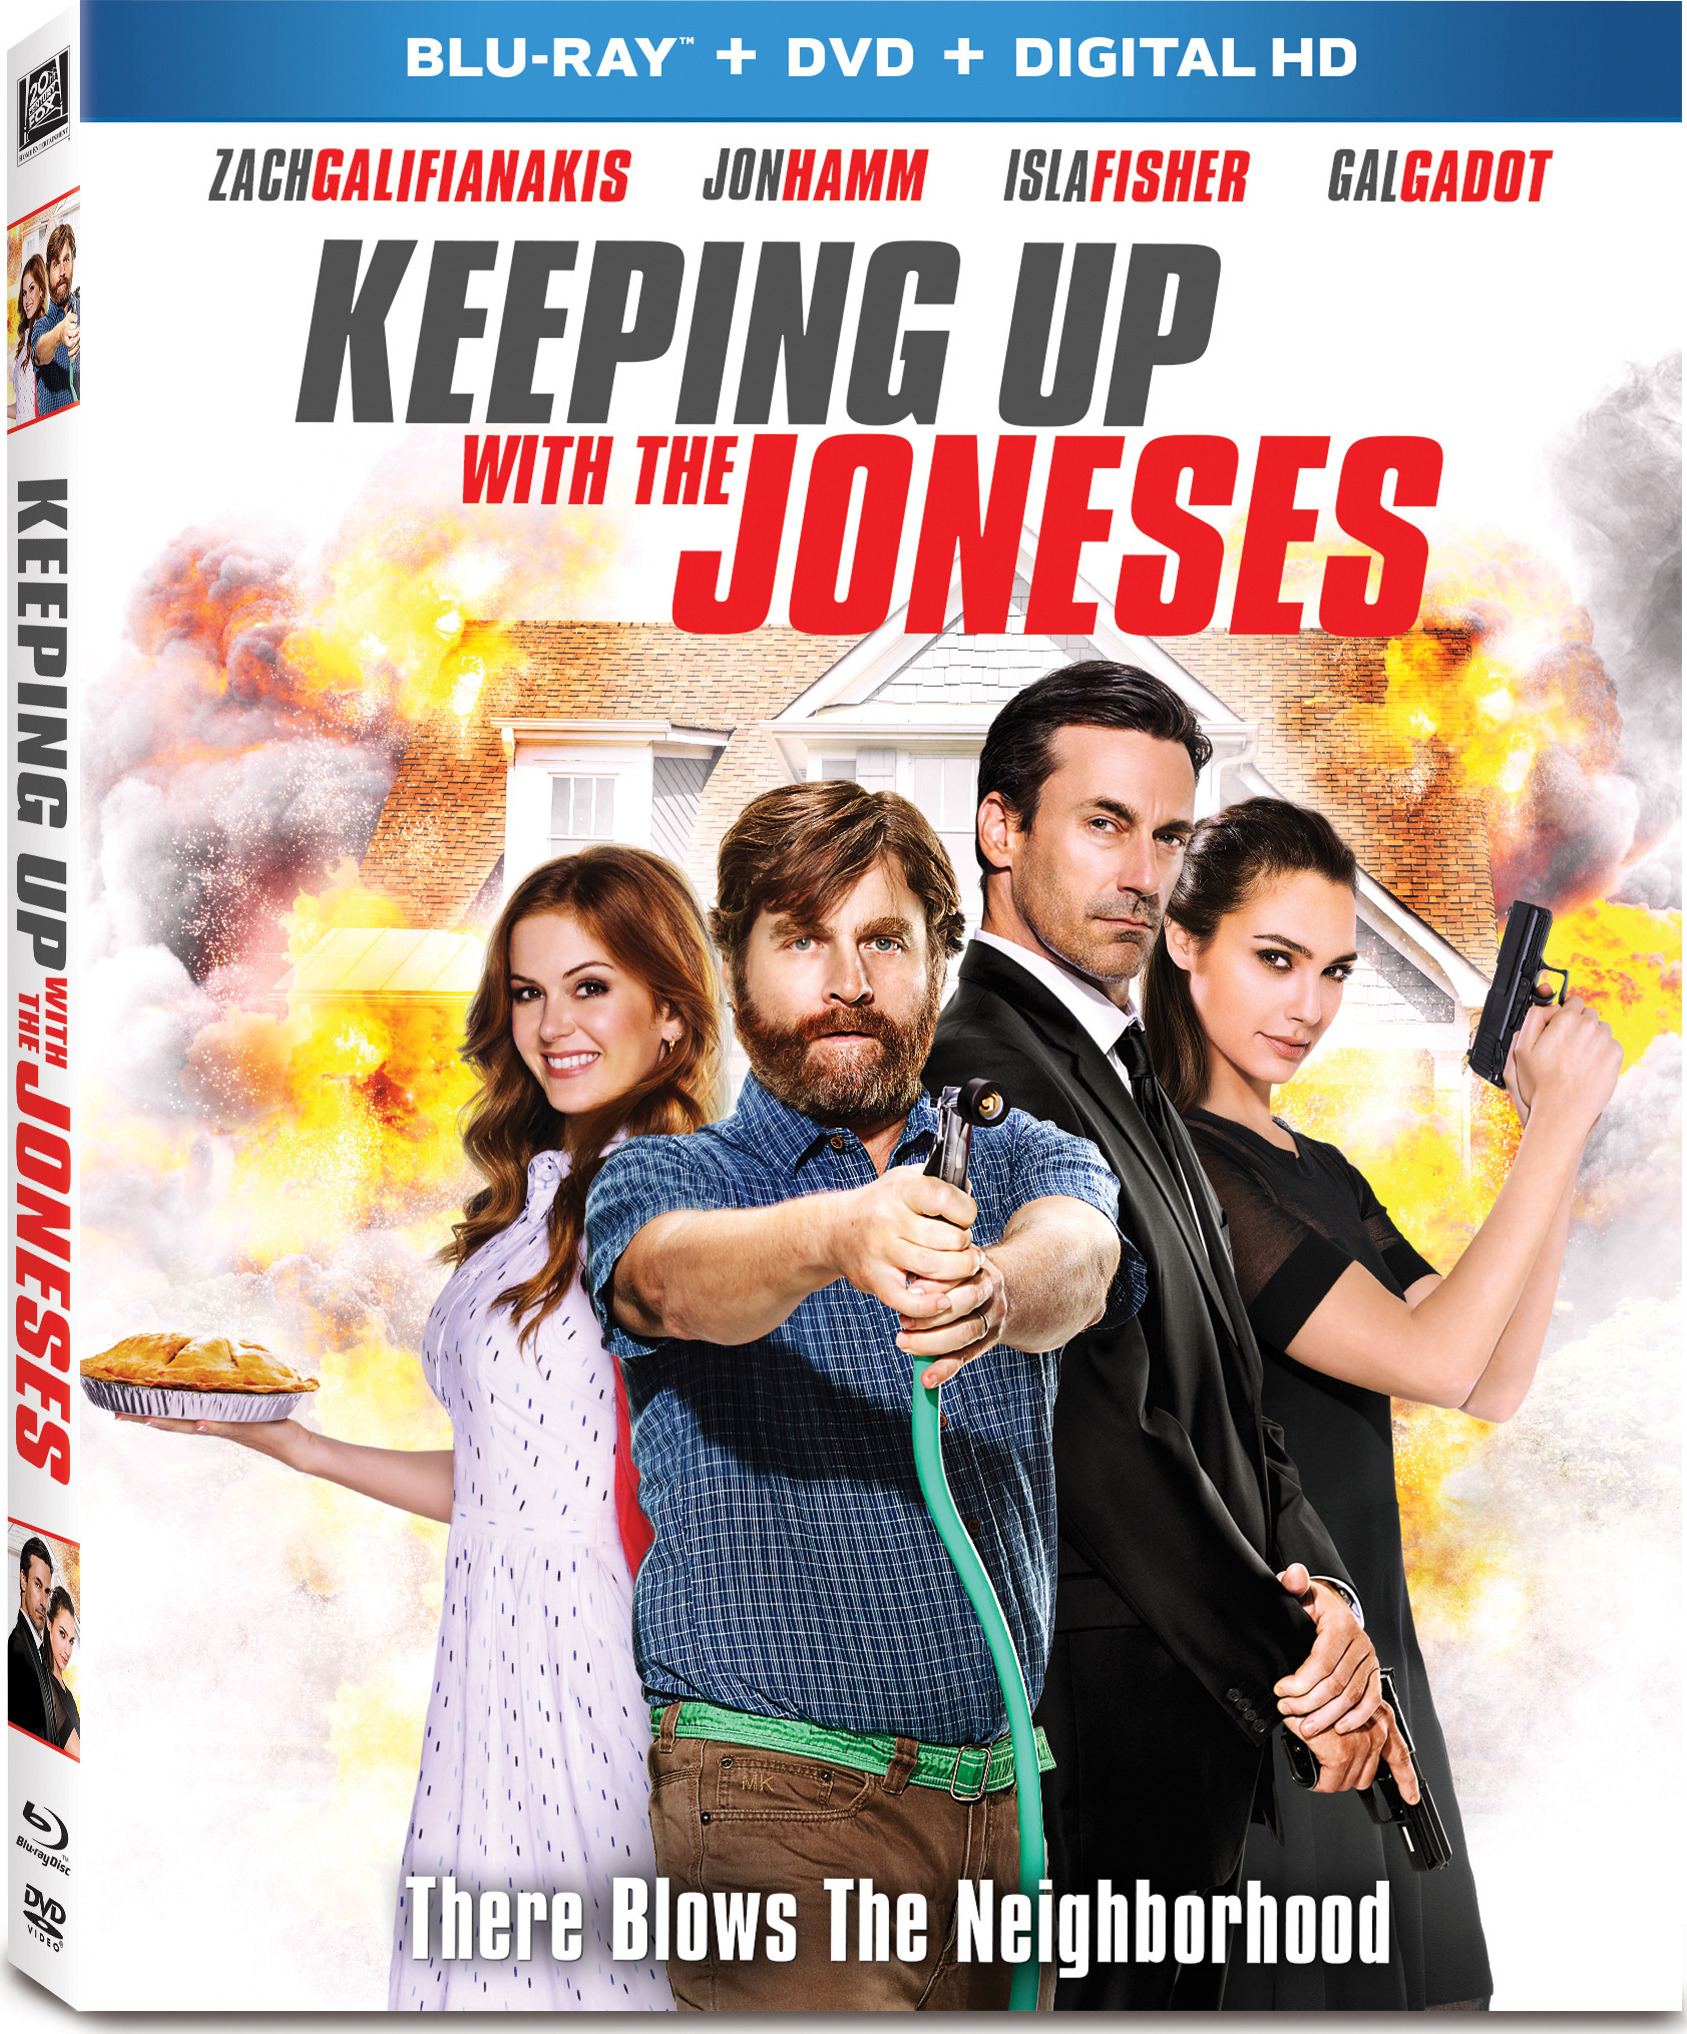 Keeping Up with the Joneses (2016) poster image